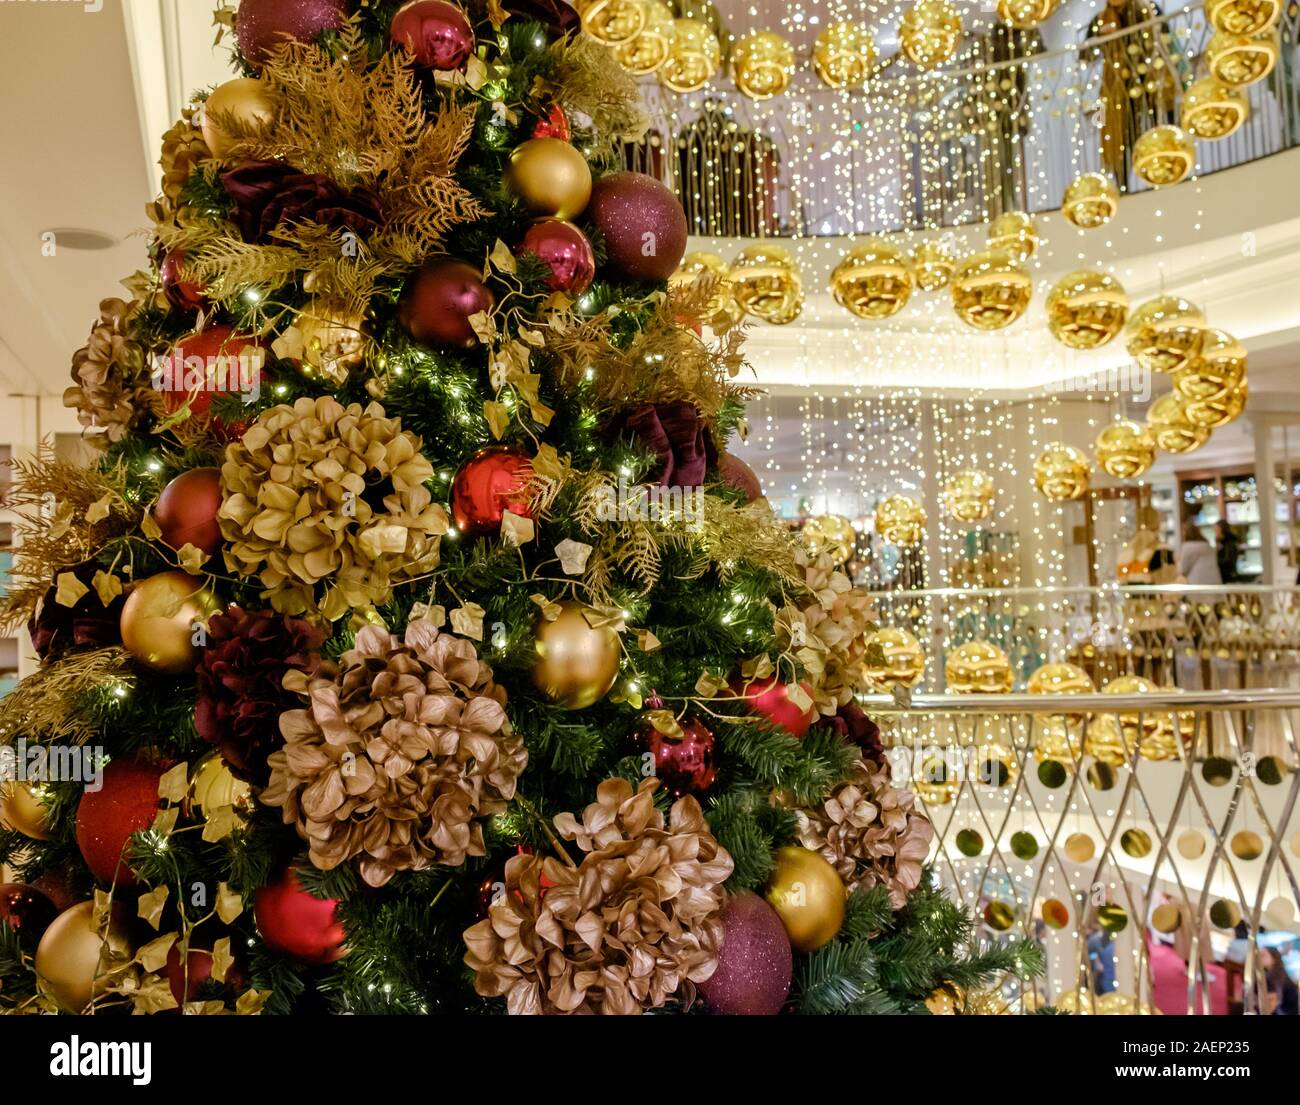 Central London Decorated Christmas Tree Next To Stair Well With Hanging Gold Baubles In Spiral Shape At High End Department Store Fortnum Mason Uk Stock Photo Alamy